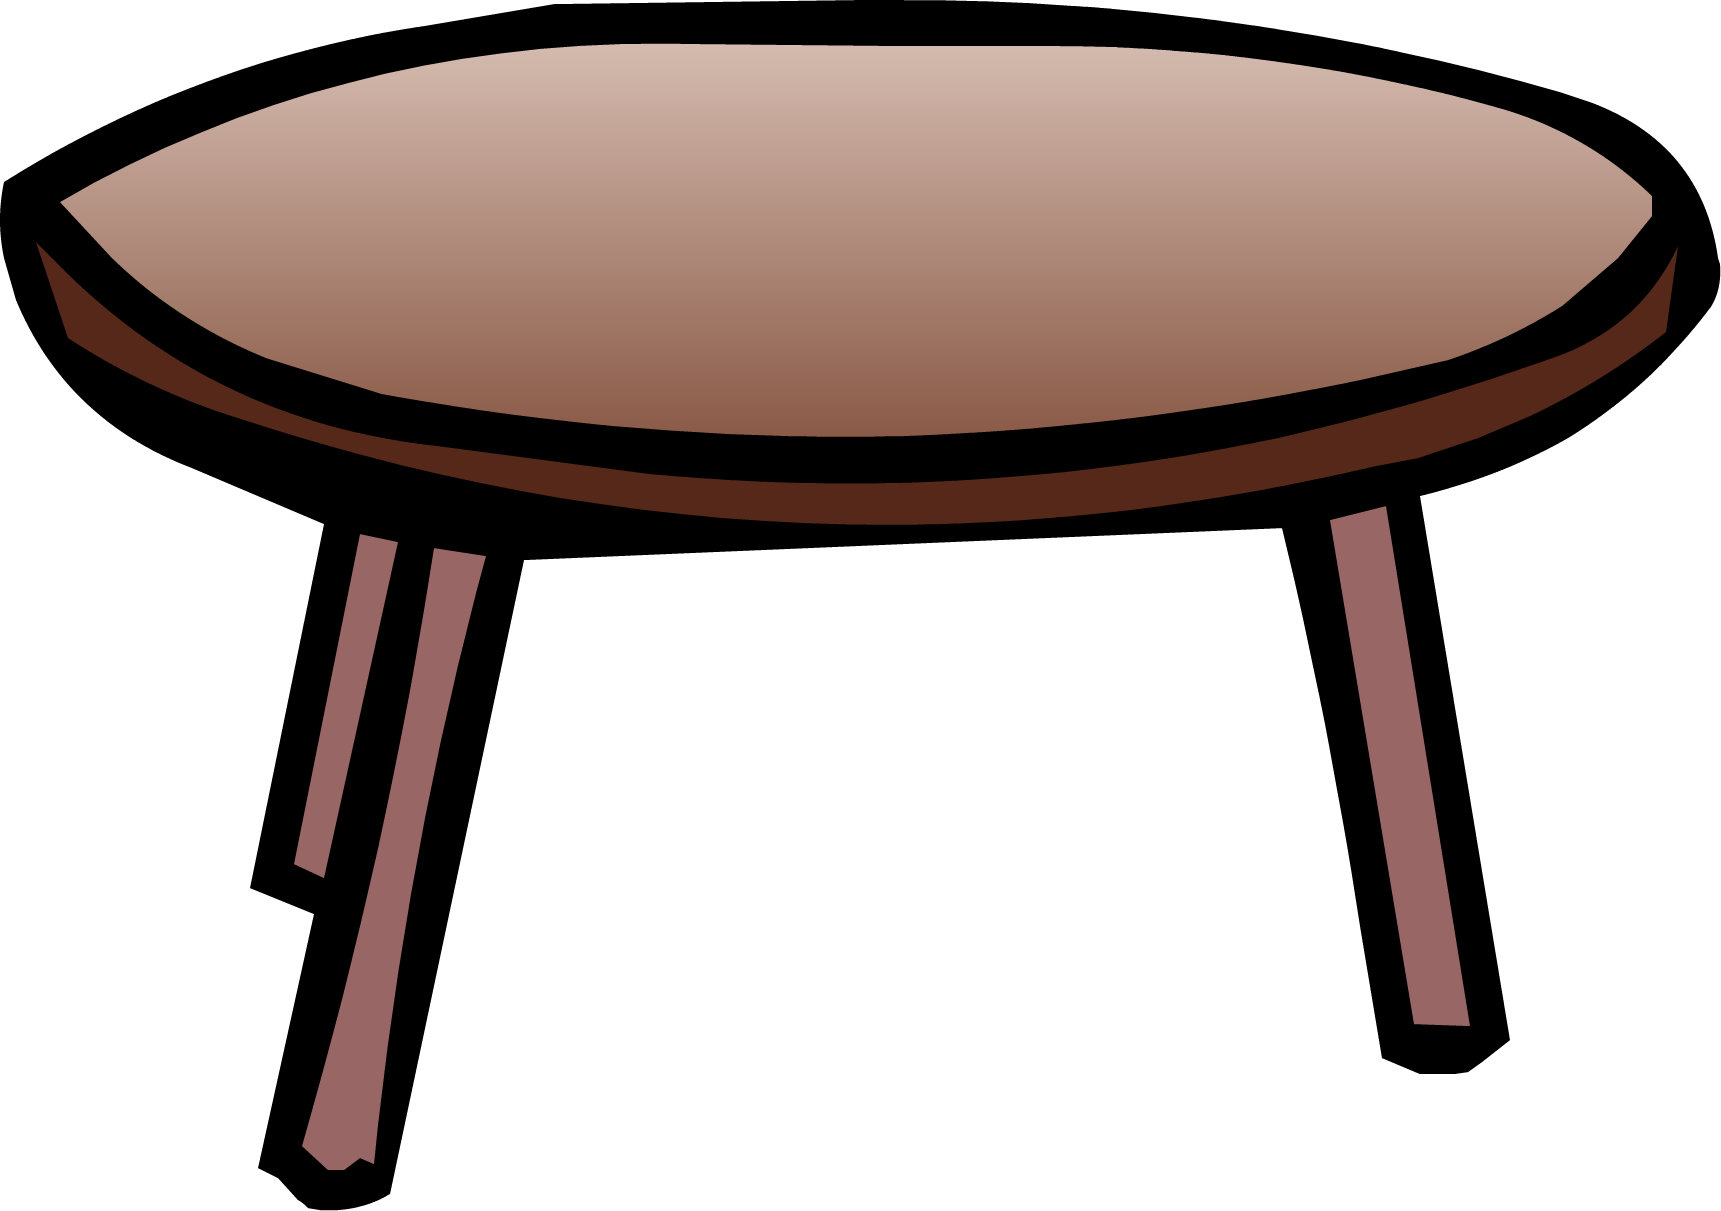 Image Coffee Table 33 Png Club Penguin Wiki Fandom